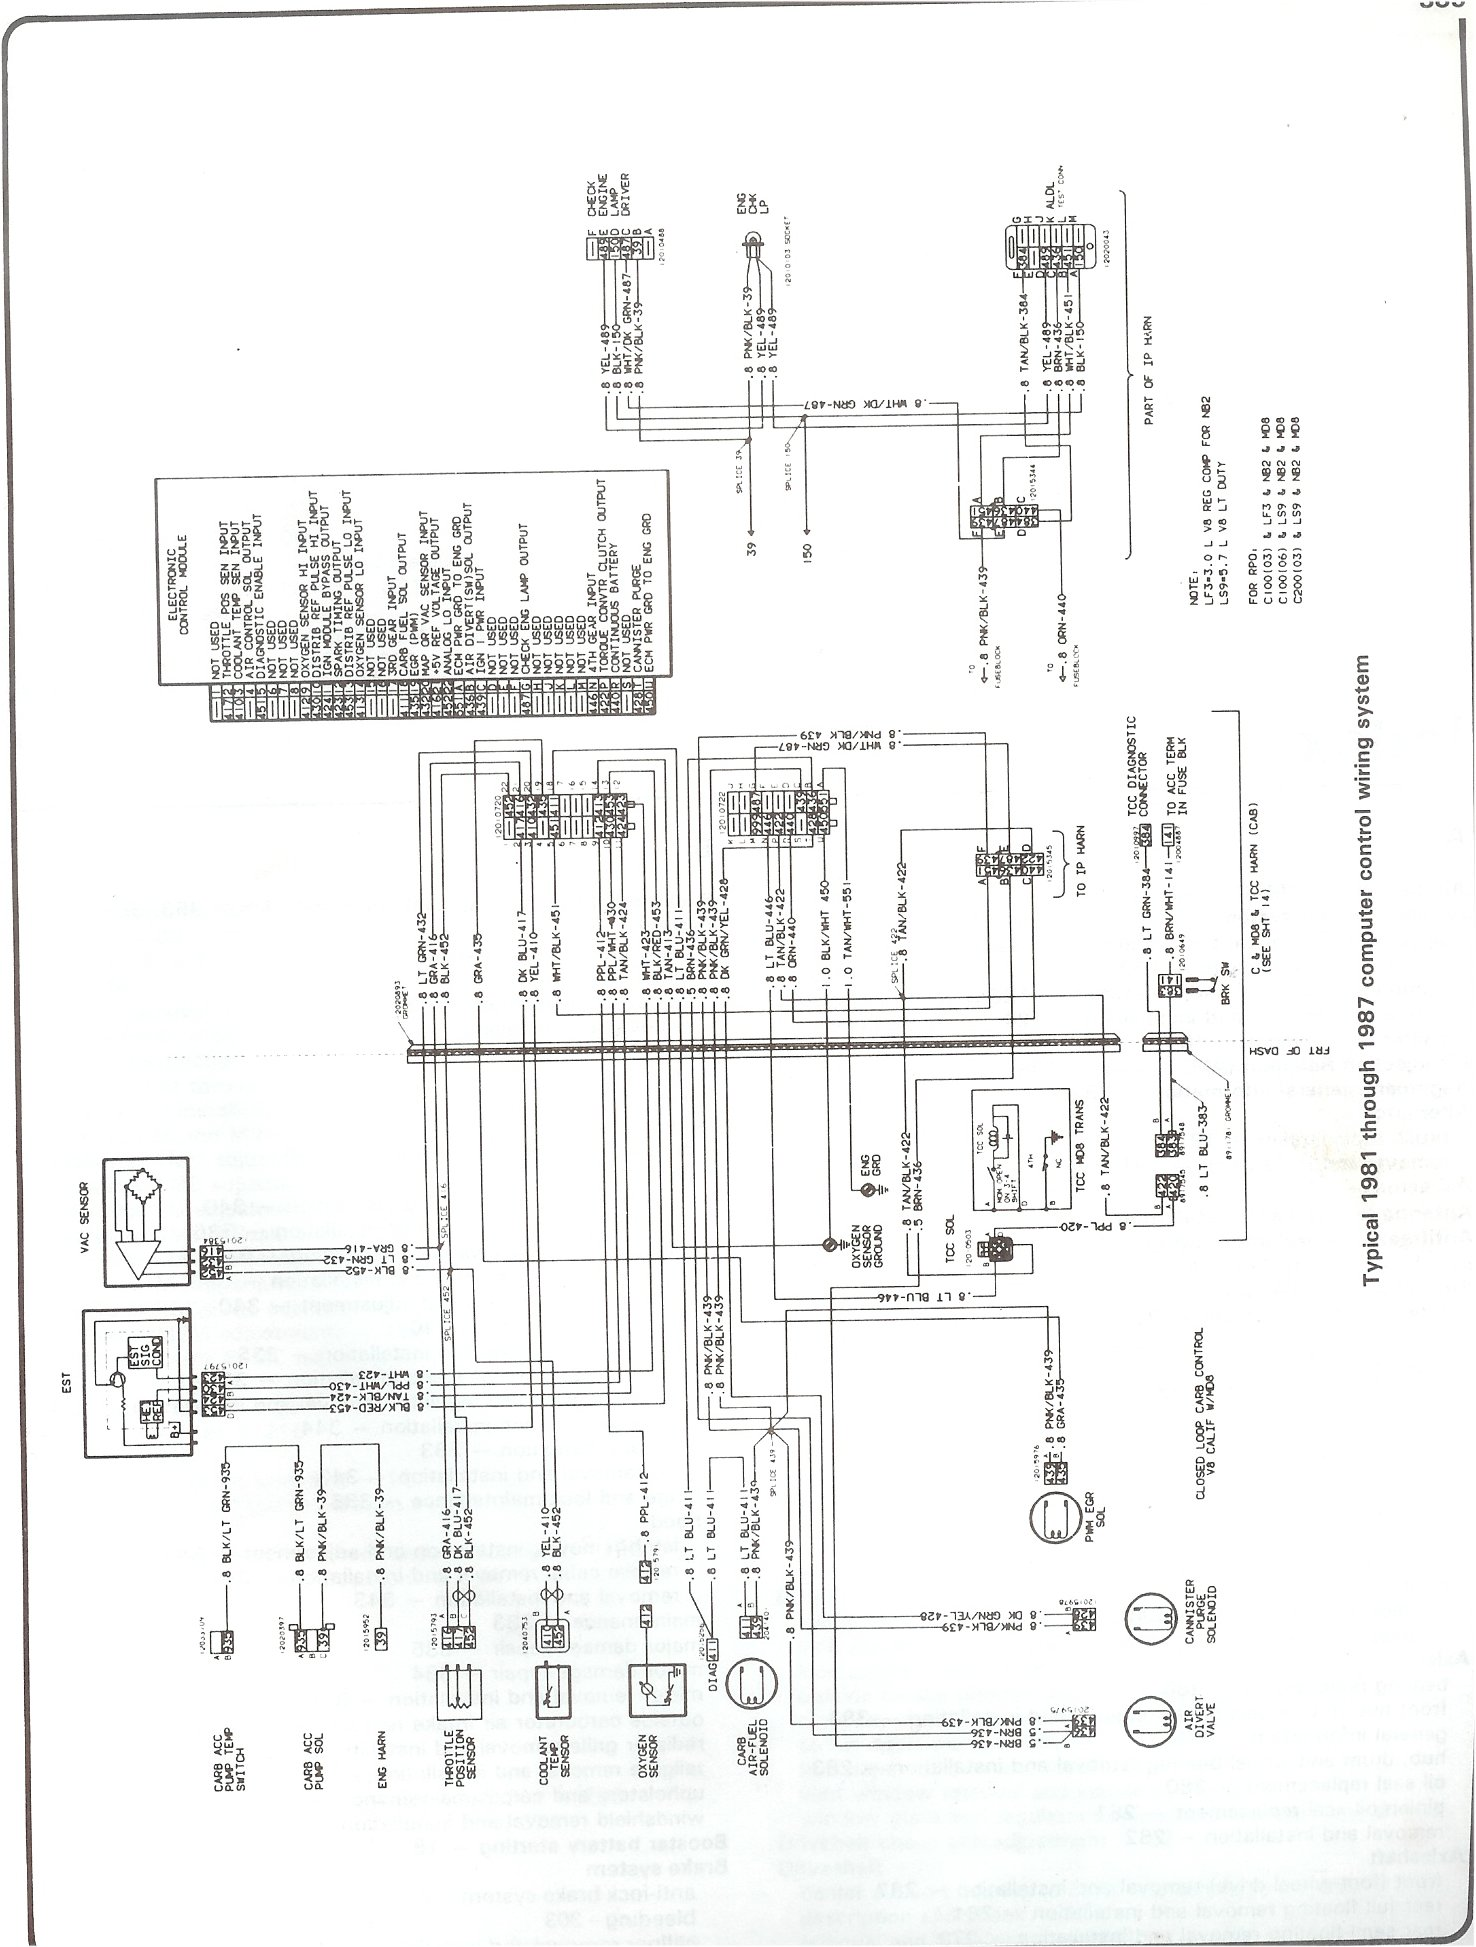 ShowAssembly together with Catalog3 additionally Steering Column Wiring Diagram 1089817 together with 1438138 1985 Ford F150 300 Inline 6 Smog Help additionally 2004 Ford F250 Vacuum Diagram. on 1980 cadillac wiring diagram